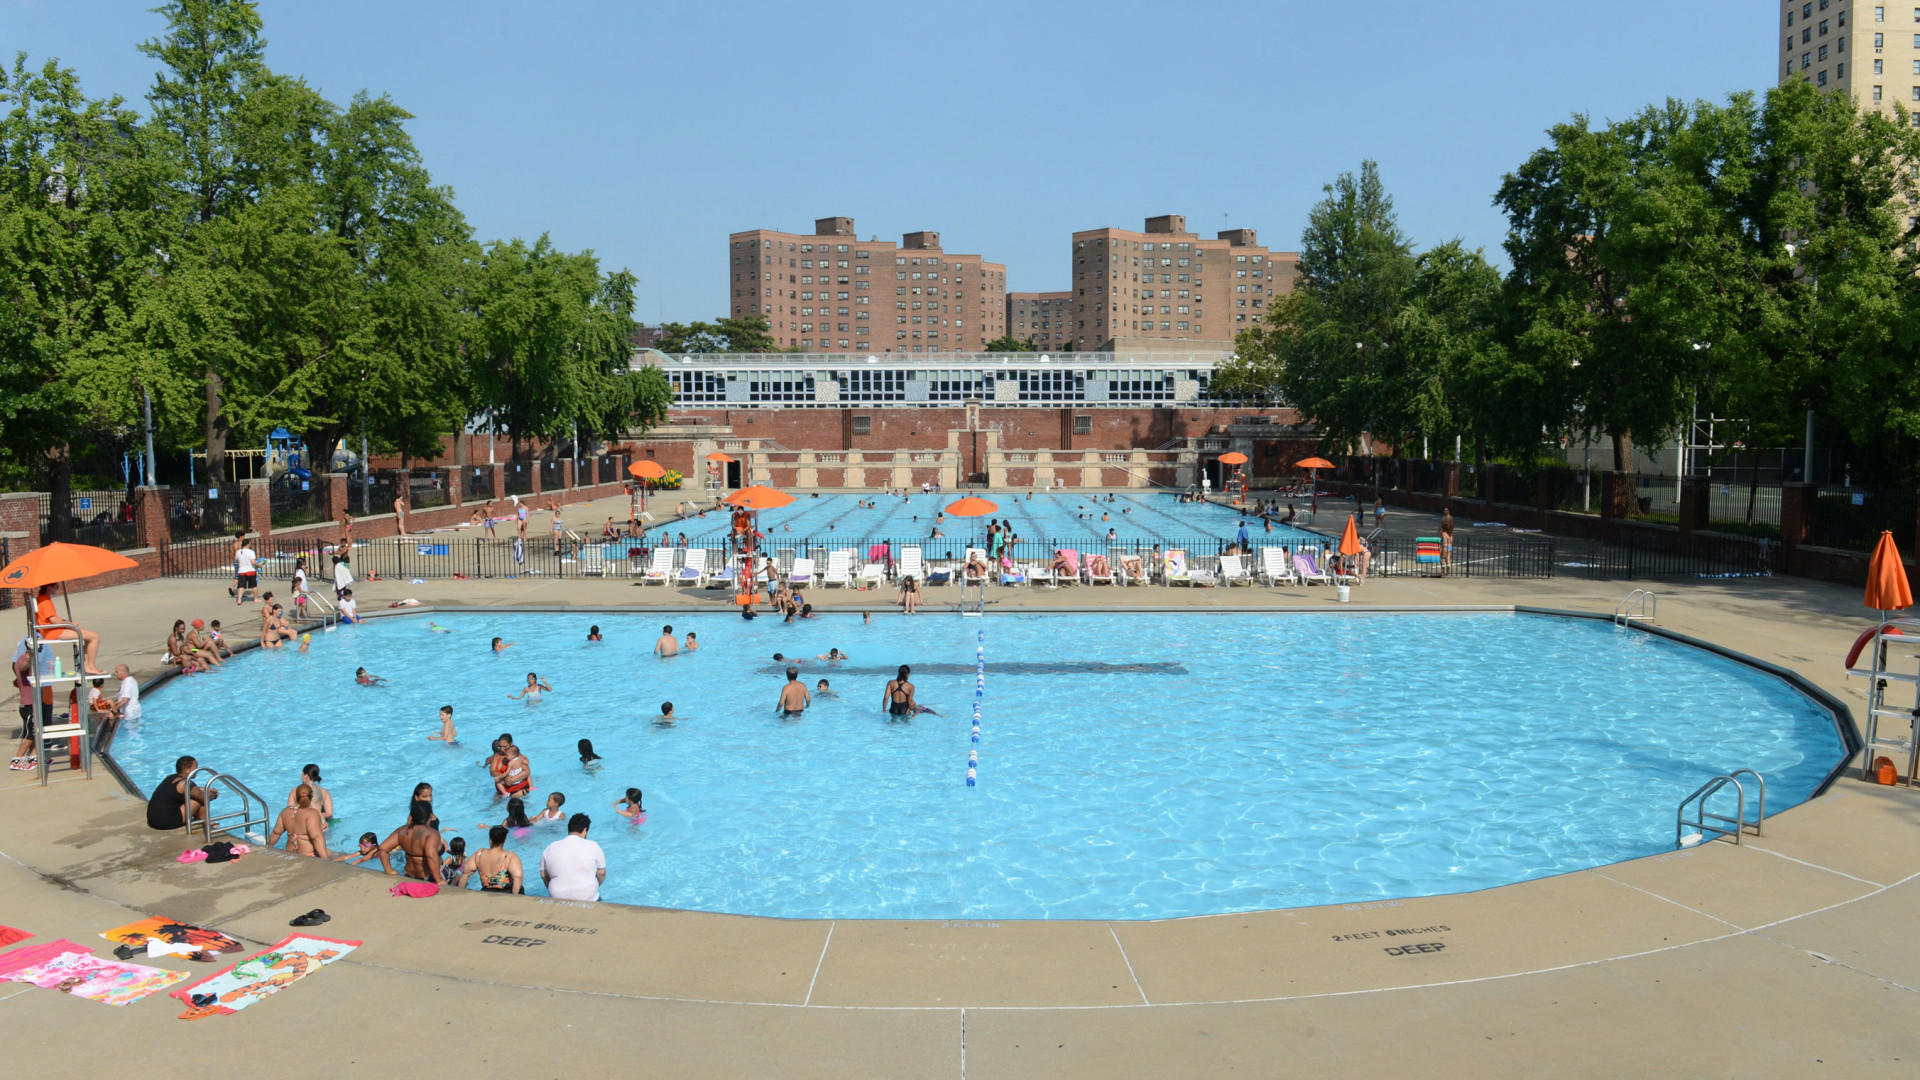 Hamilton Fish outdoor pool, New York City